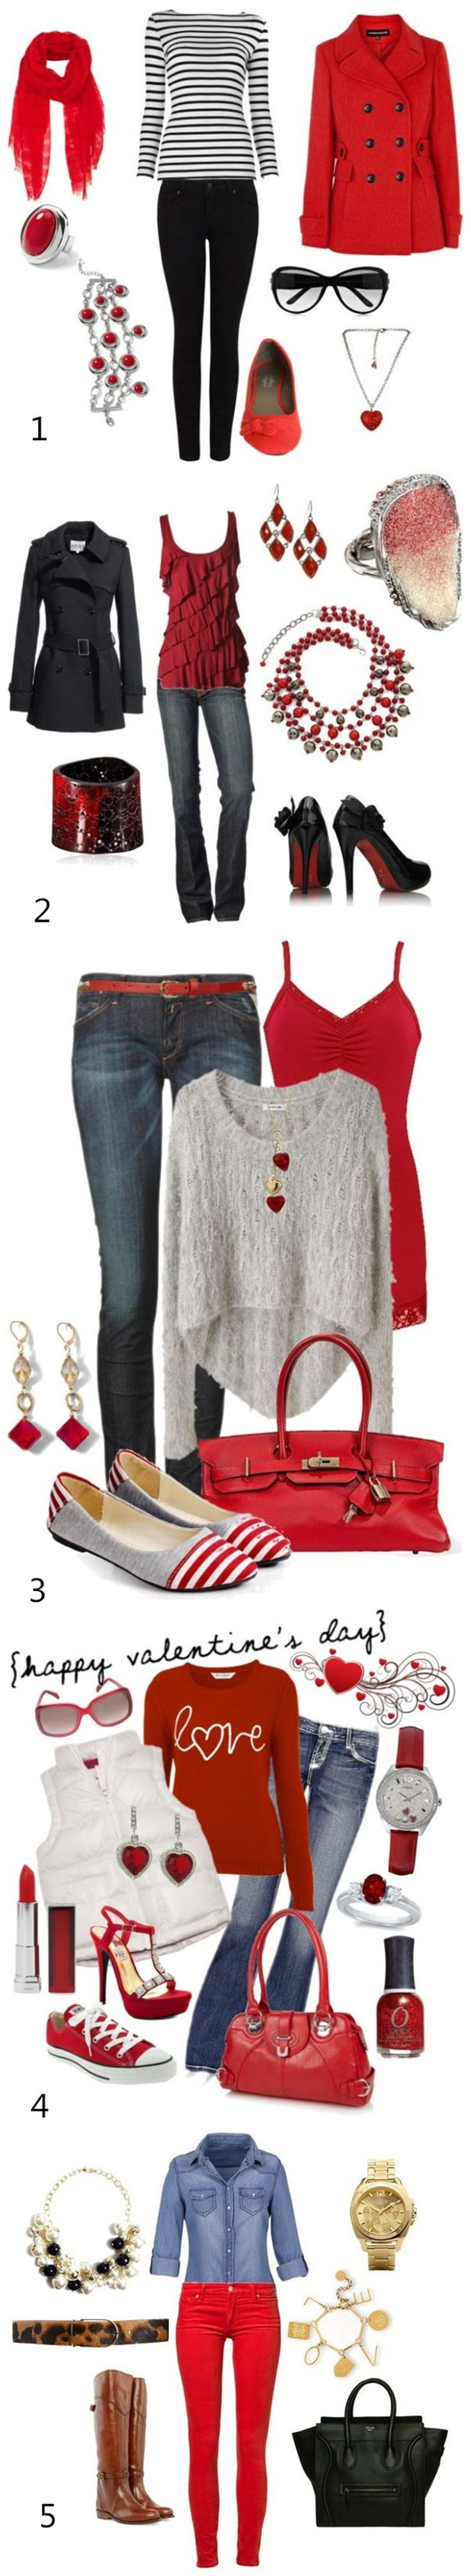 Best 25+ Valentine's day outfit ideas on Pinterest | Valentines ...